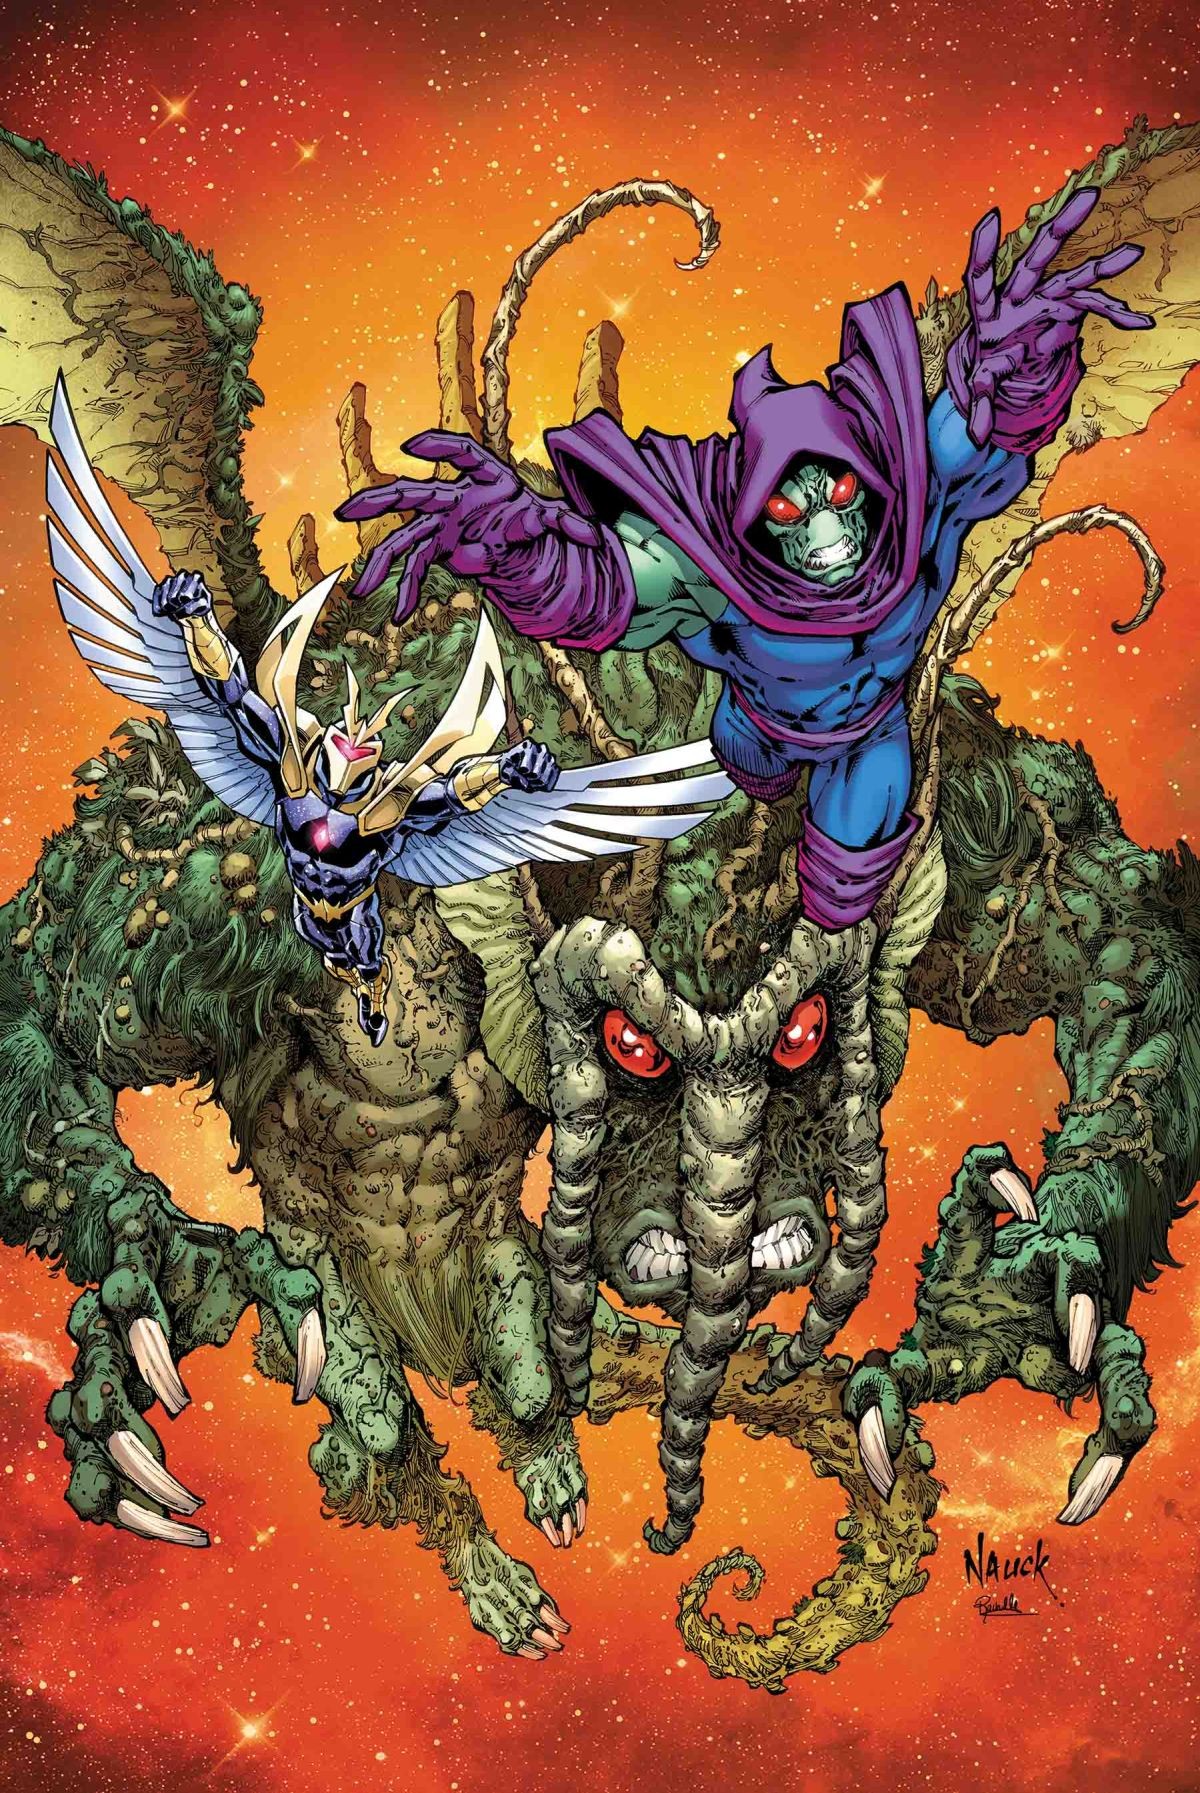 INFINITY WARS: SLEEPWALKER #3 (of 4)